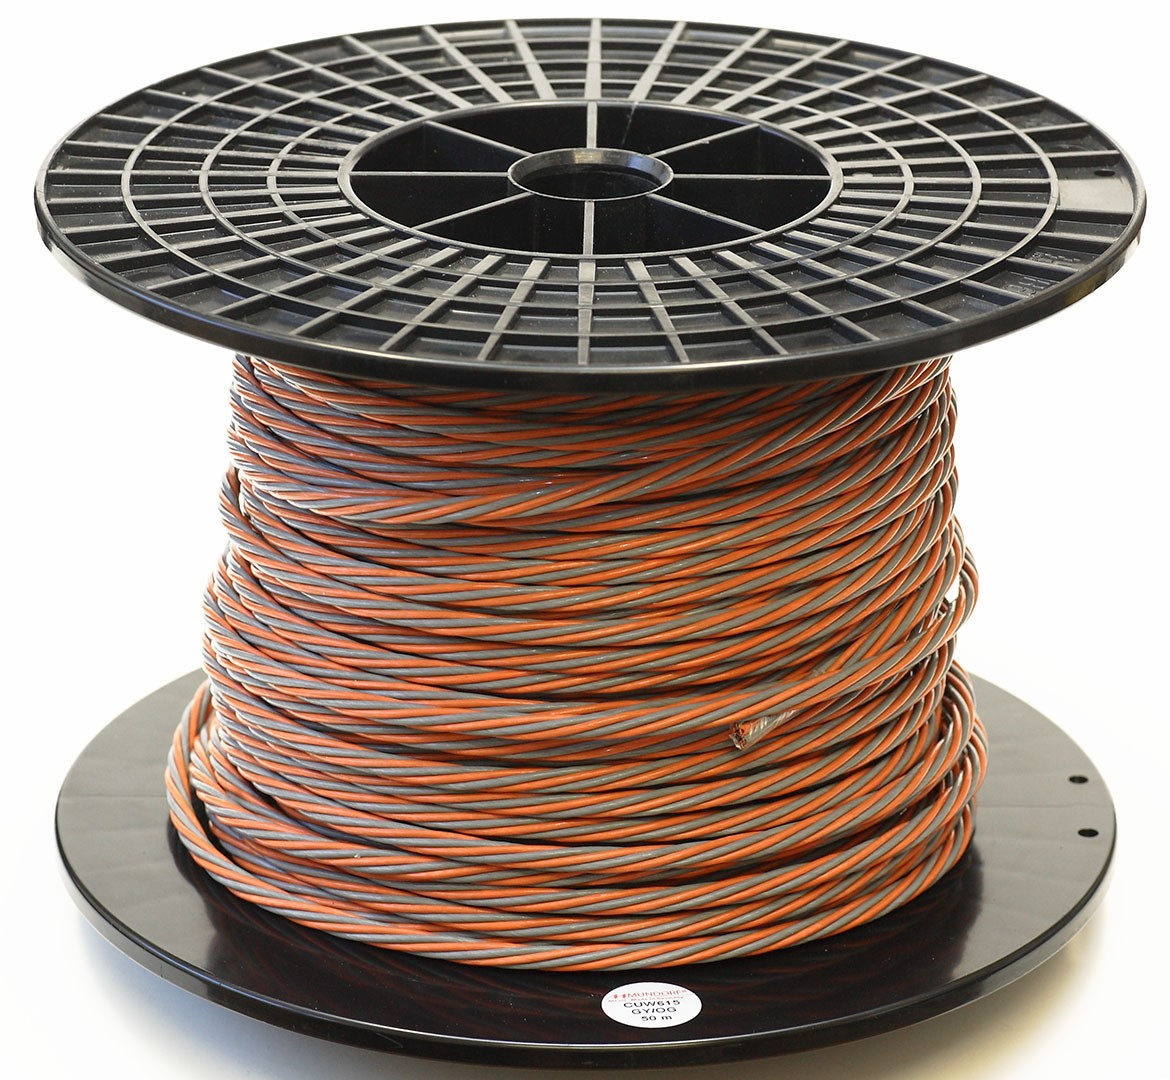 Mundorf MConnect CUW Copper wire 6*1.8mm2 PTFE insulated CUW615GY/OG ...